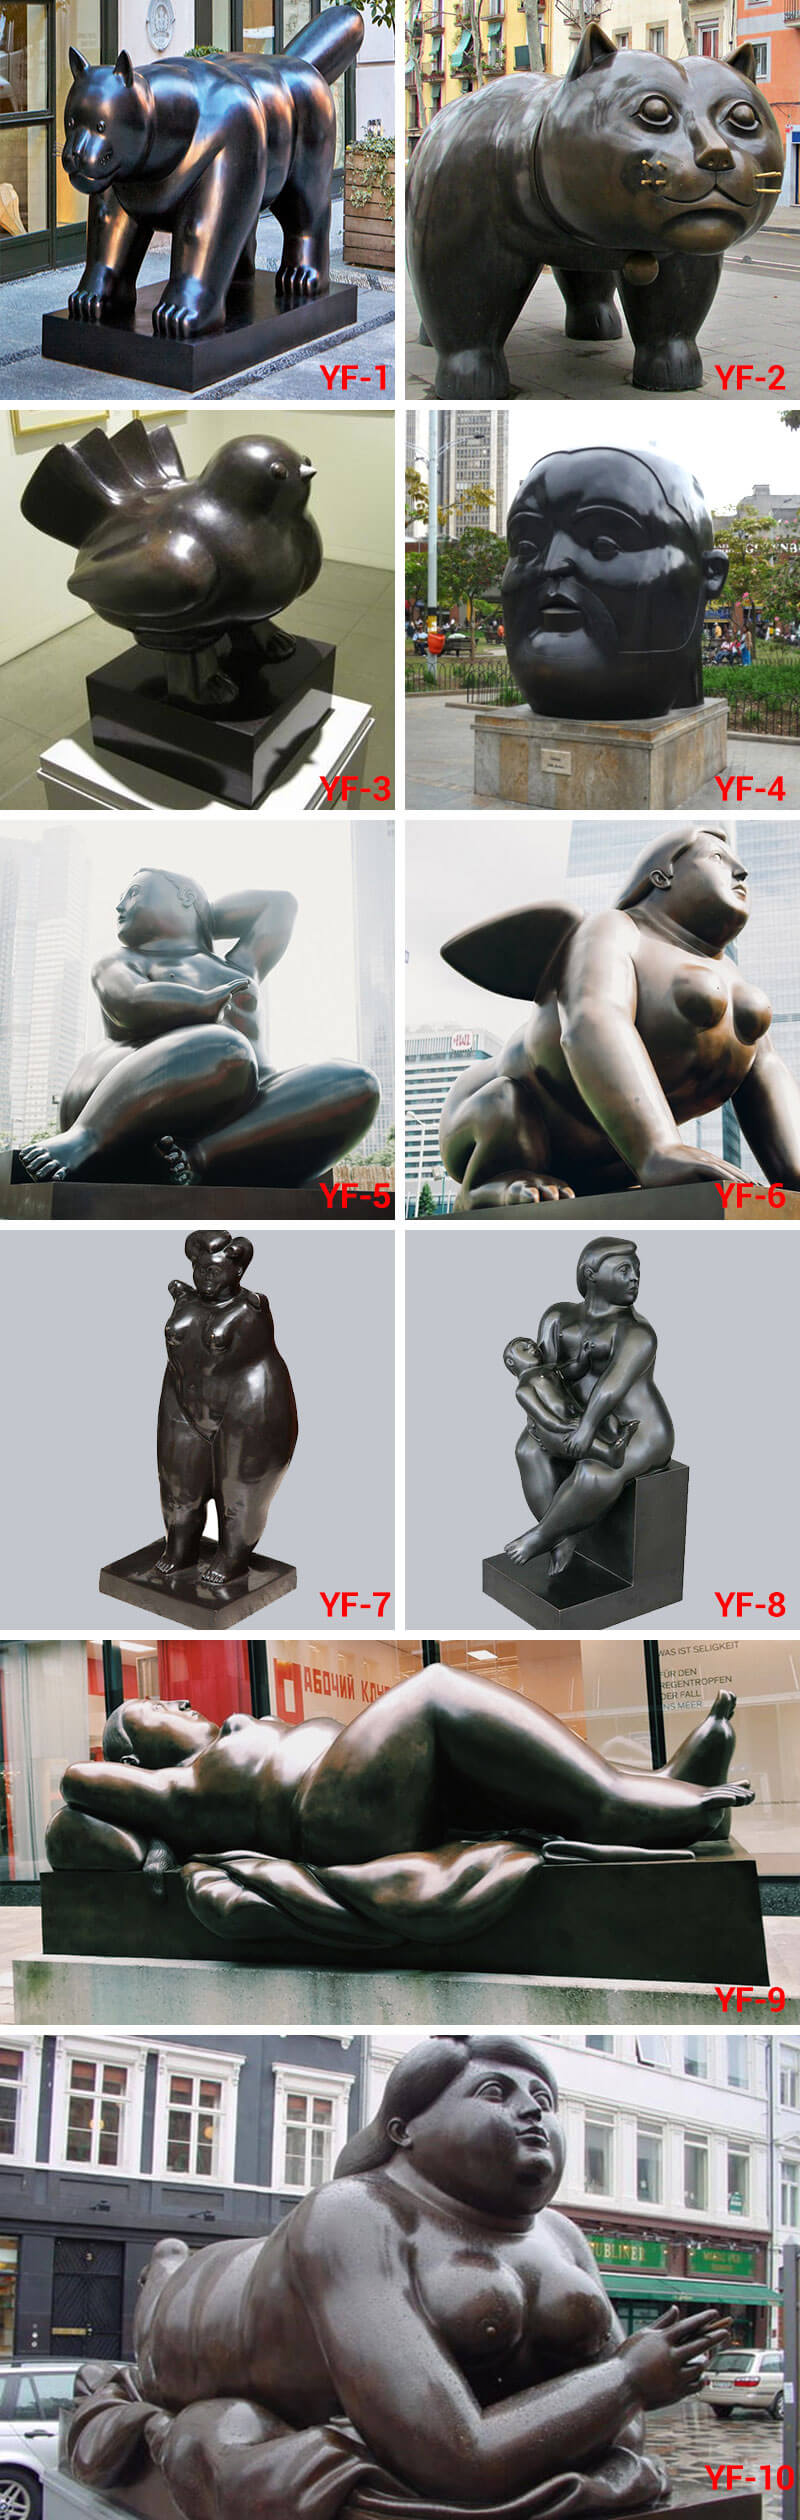 Botero Statue sculptures for sale